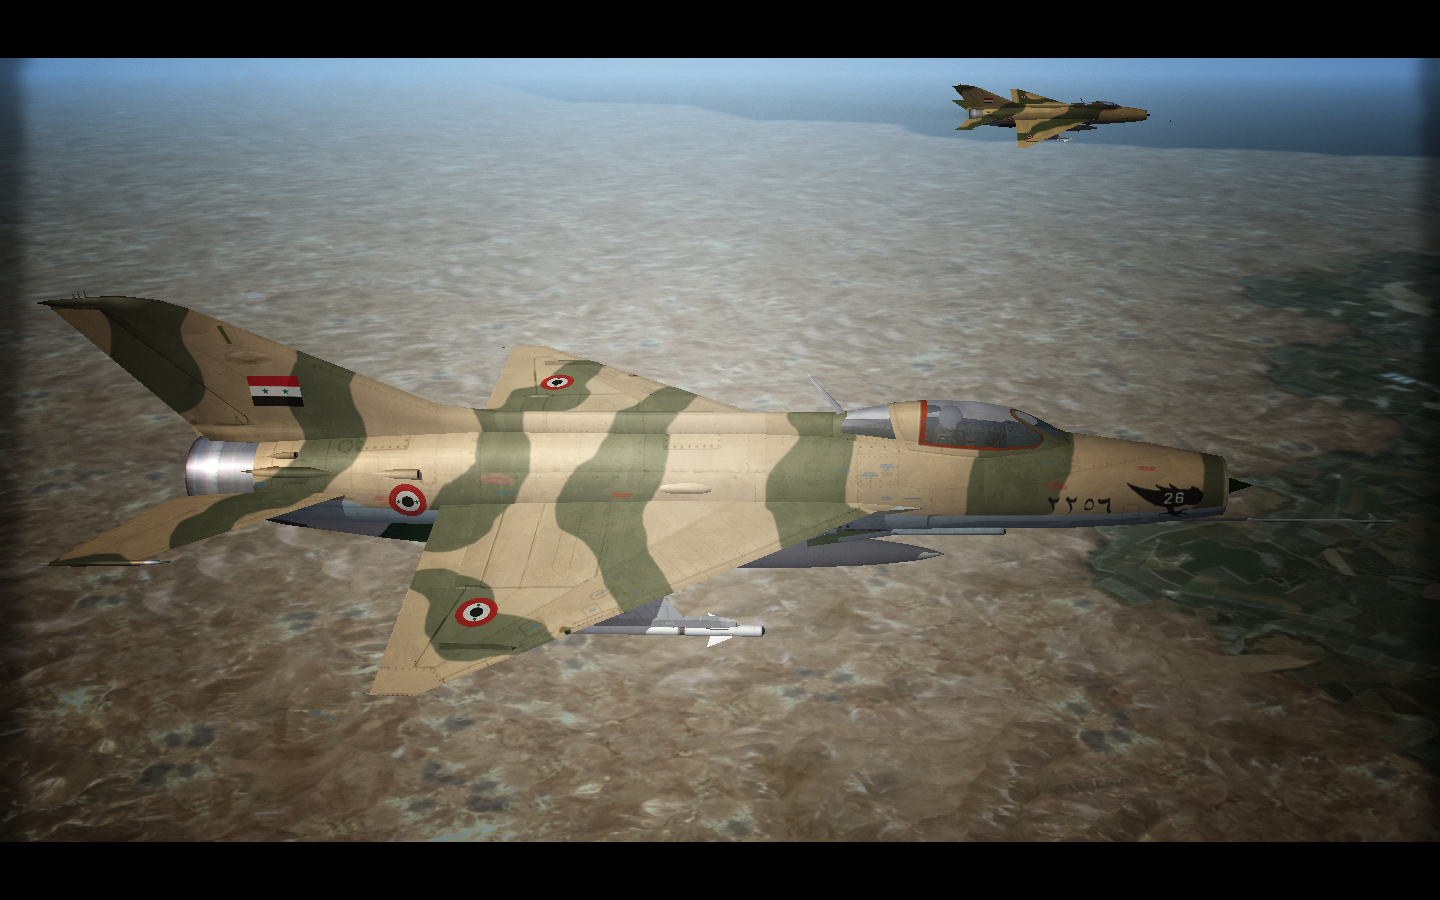 MiG-21 Fishbeds Over Middle East/